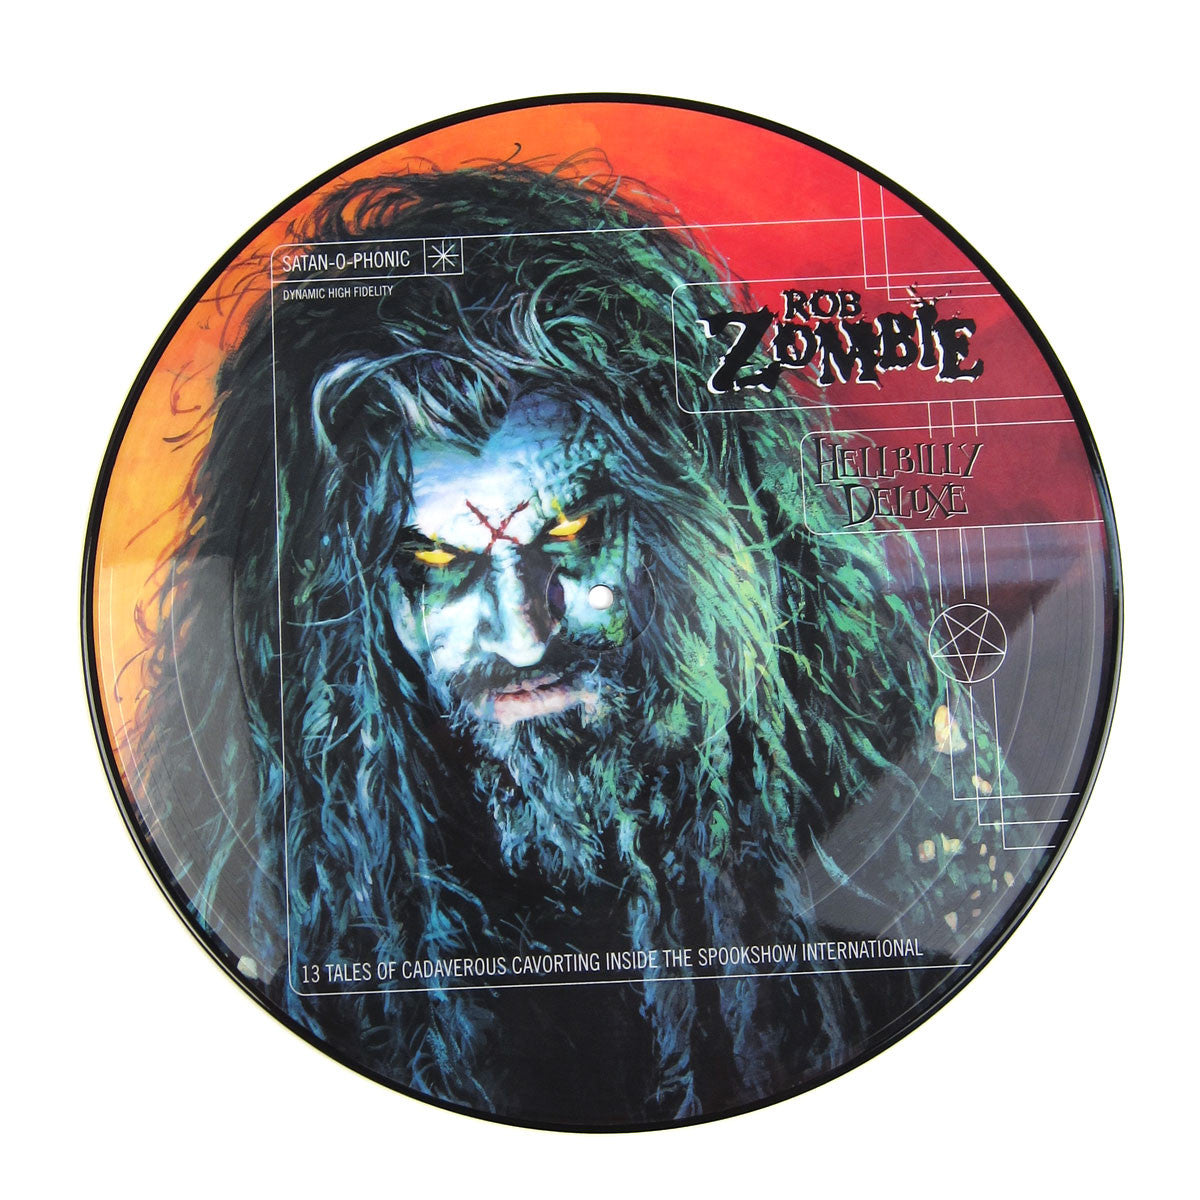 Rob Zombie: Hellbilly Deluxe Limited Edition Picture Disc Vinyl LP detail